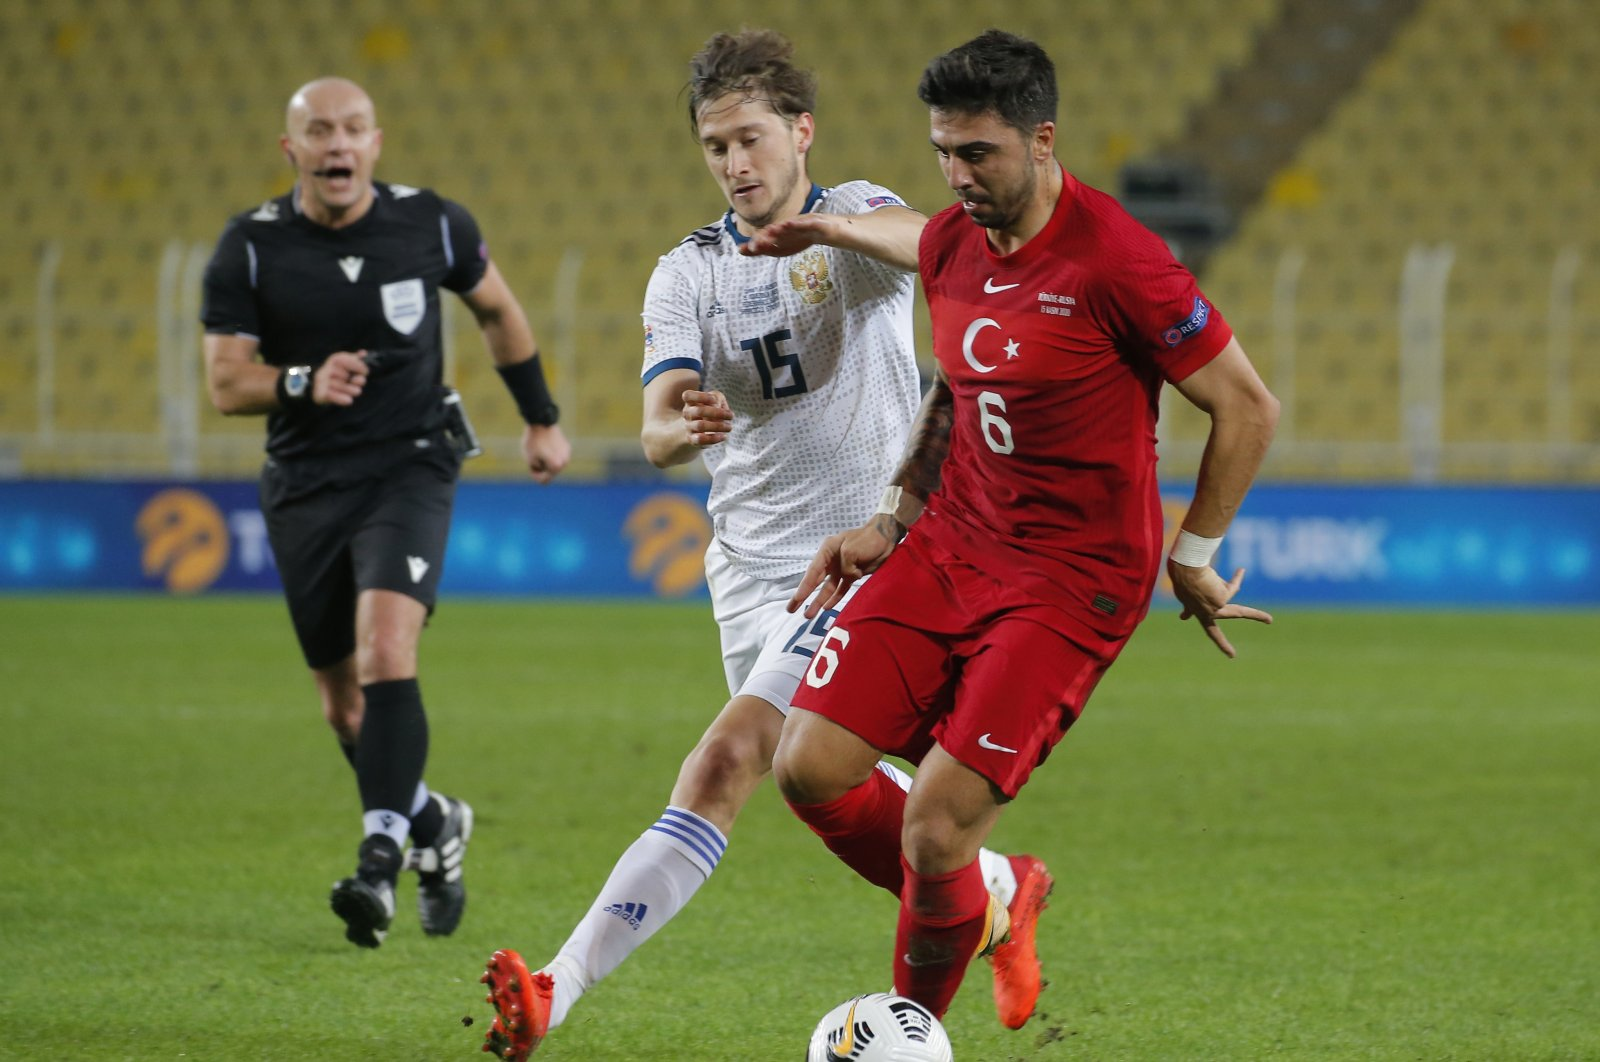 Turkey's Ozan Tufan (R) controls the ball in front of Russia's Aleksei Miranchunk during a UEFA Nations League match in Istanbul, Turkey, Nov. 15, 2020. (AP Photo)